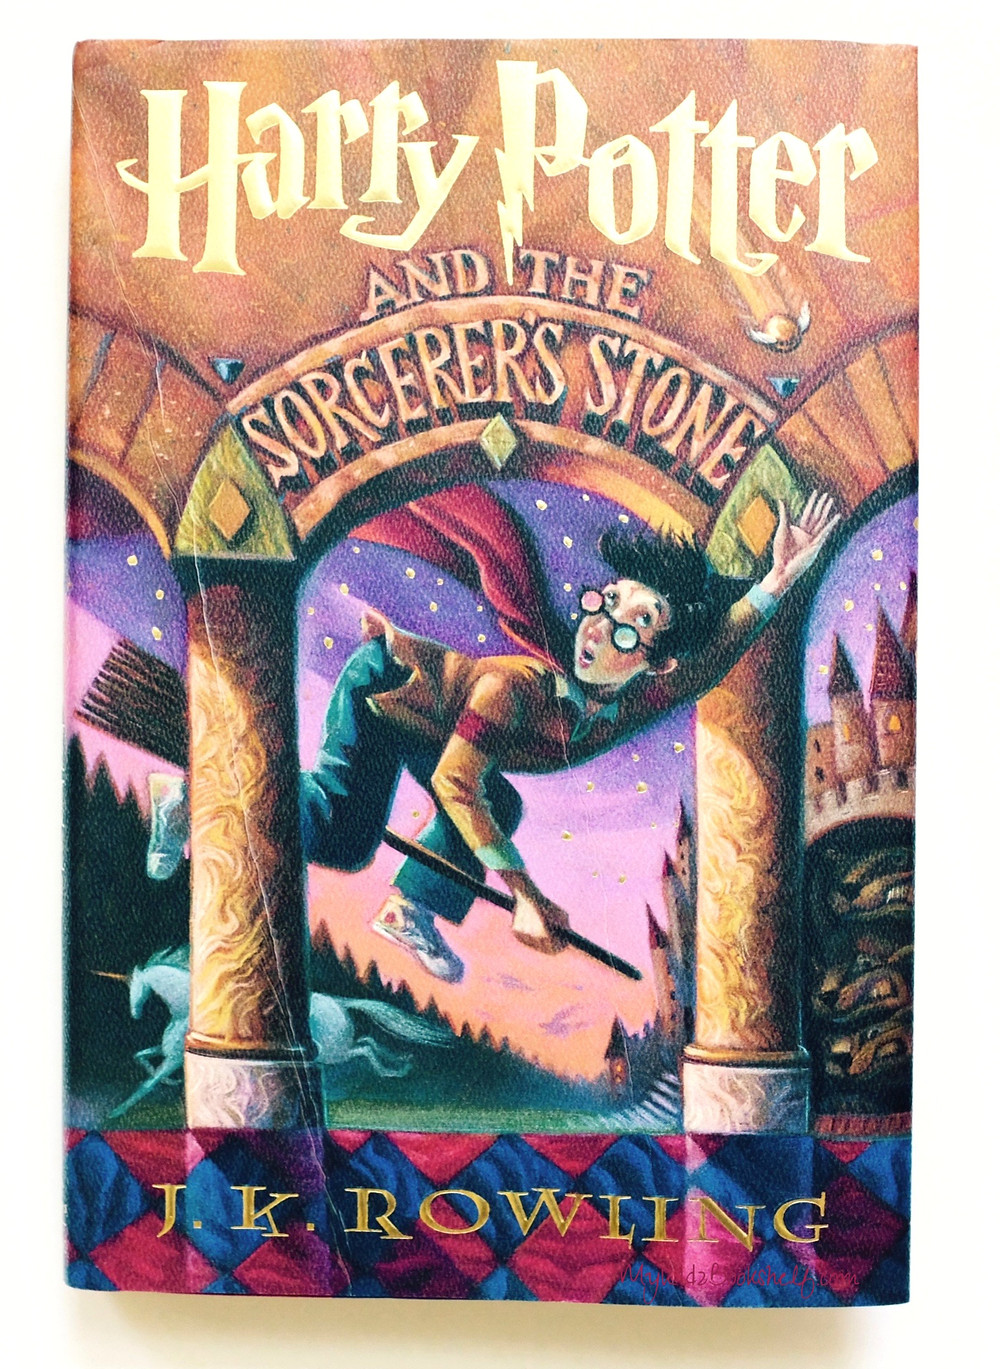 Harry Potter and the Sorcerer's Stone book cover by J.K. Rowling with Harry on broom flying through archway